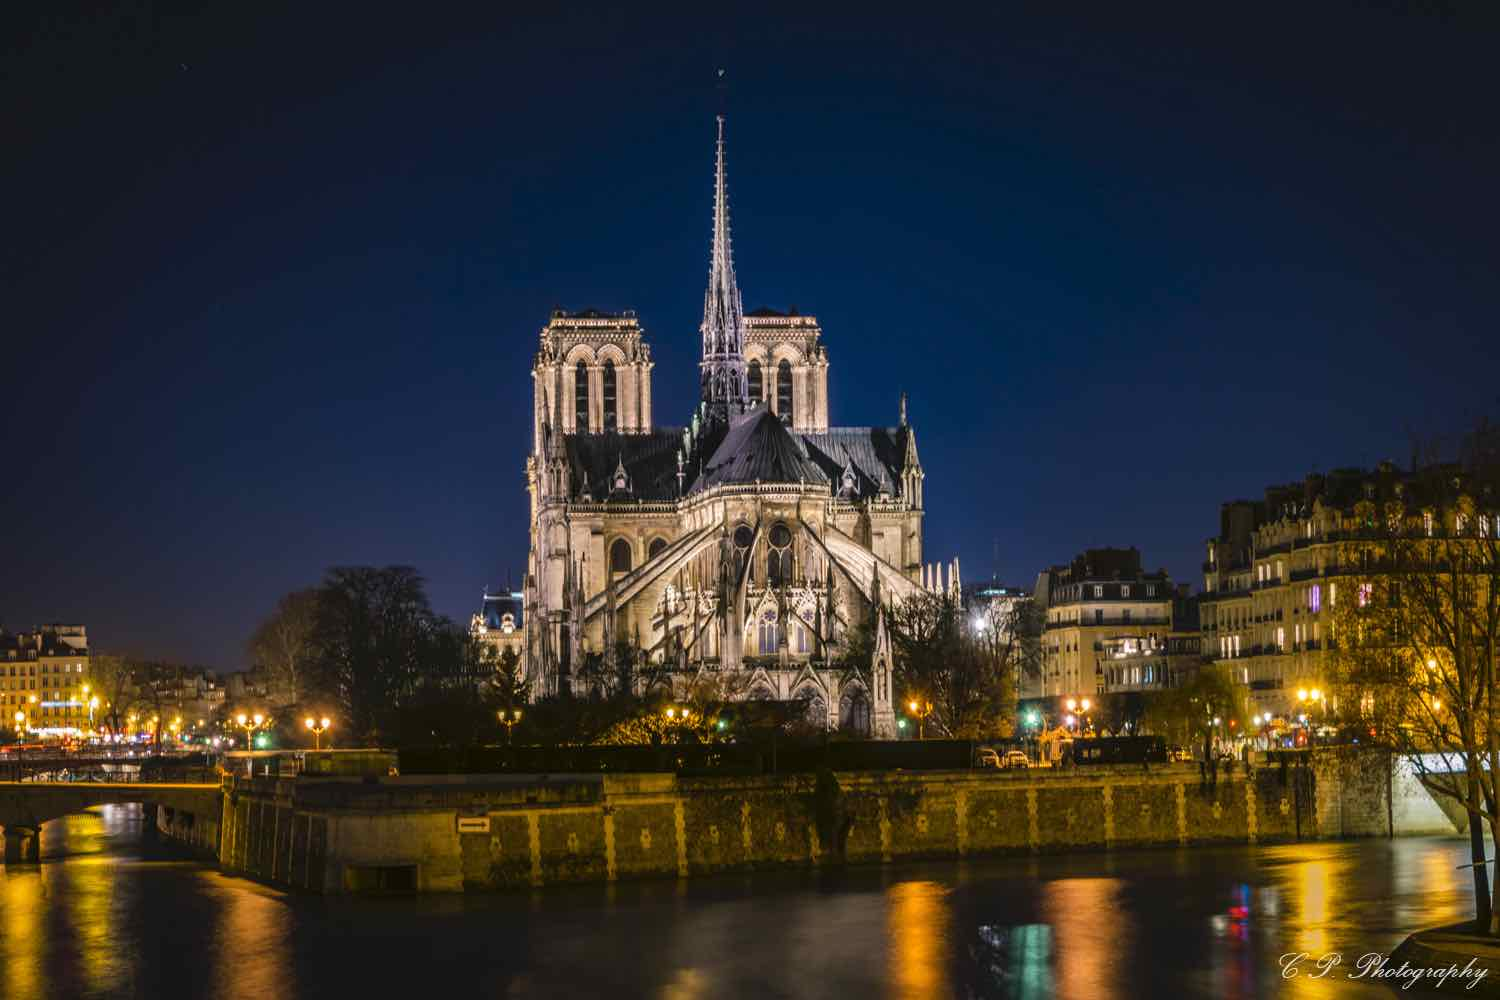 Notre Dame de Paris before collapse - Photo by Carlos Perez.